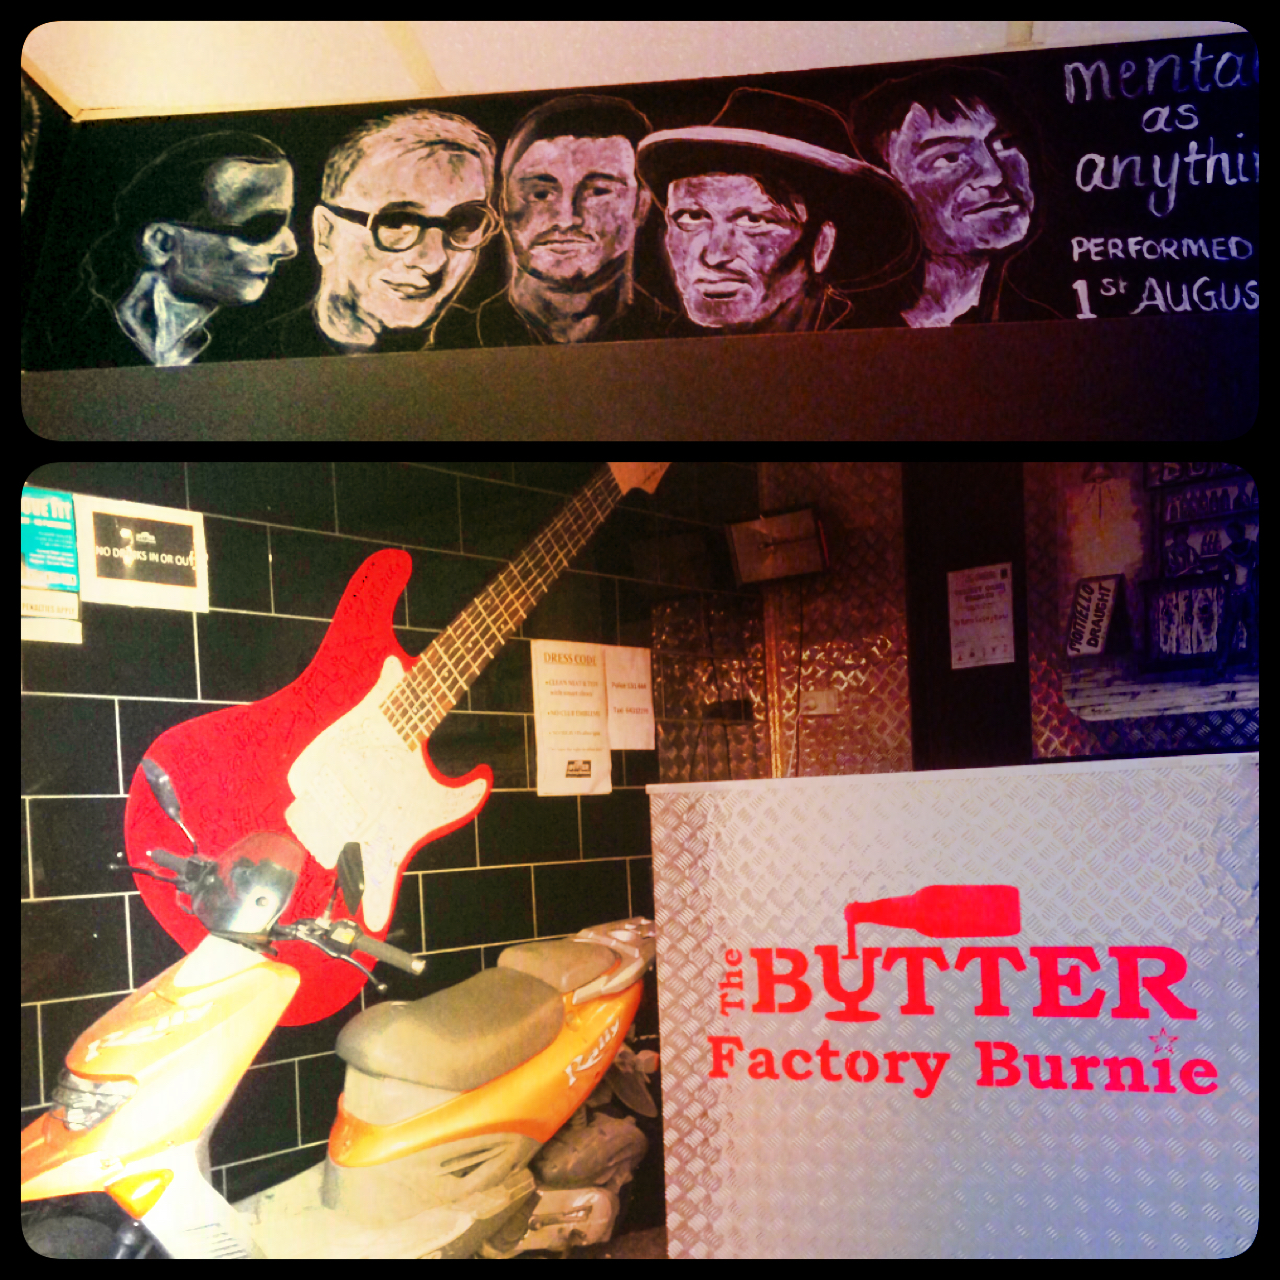 The Butter Factory in Burnie